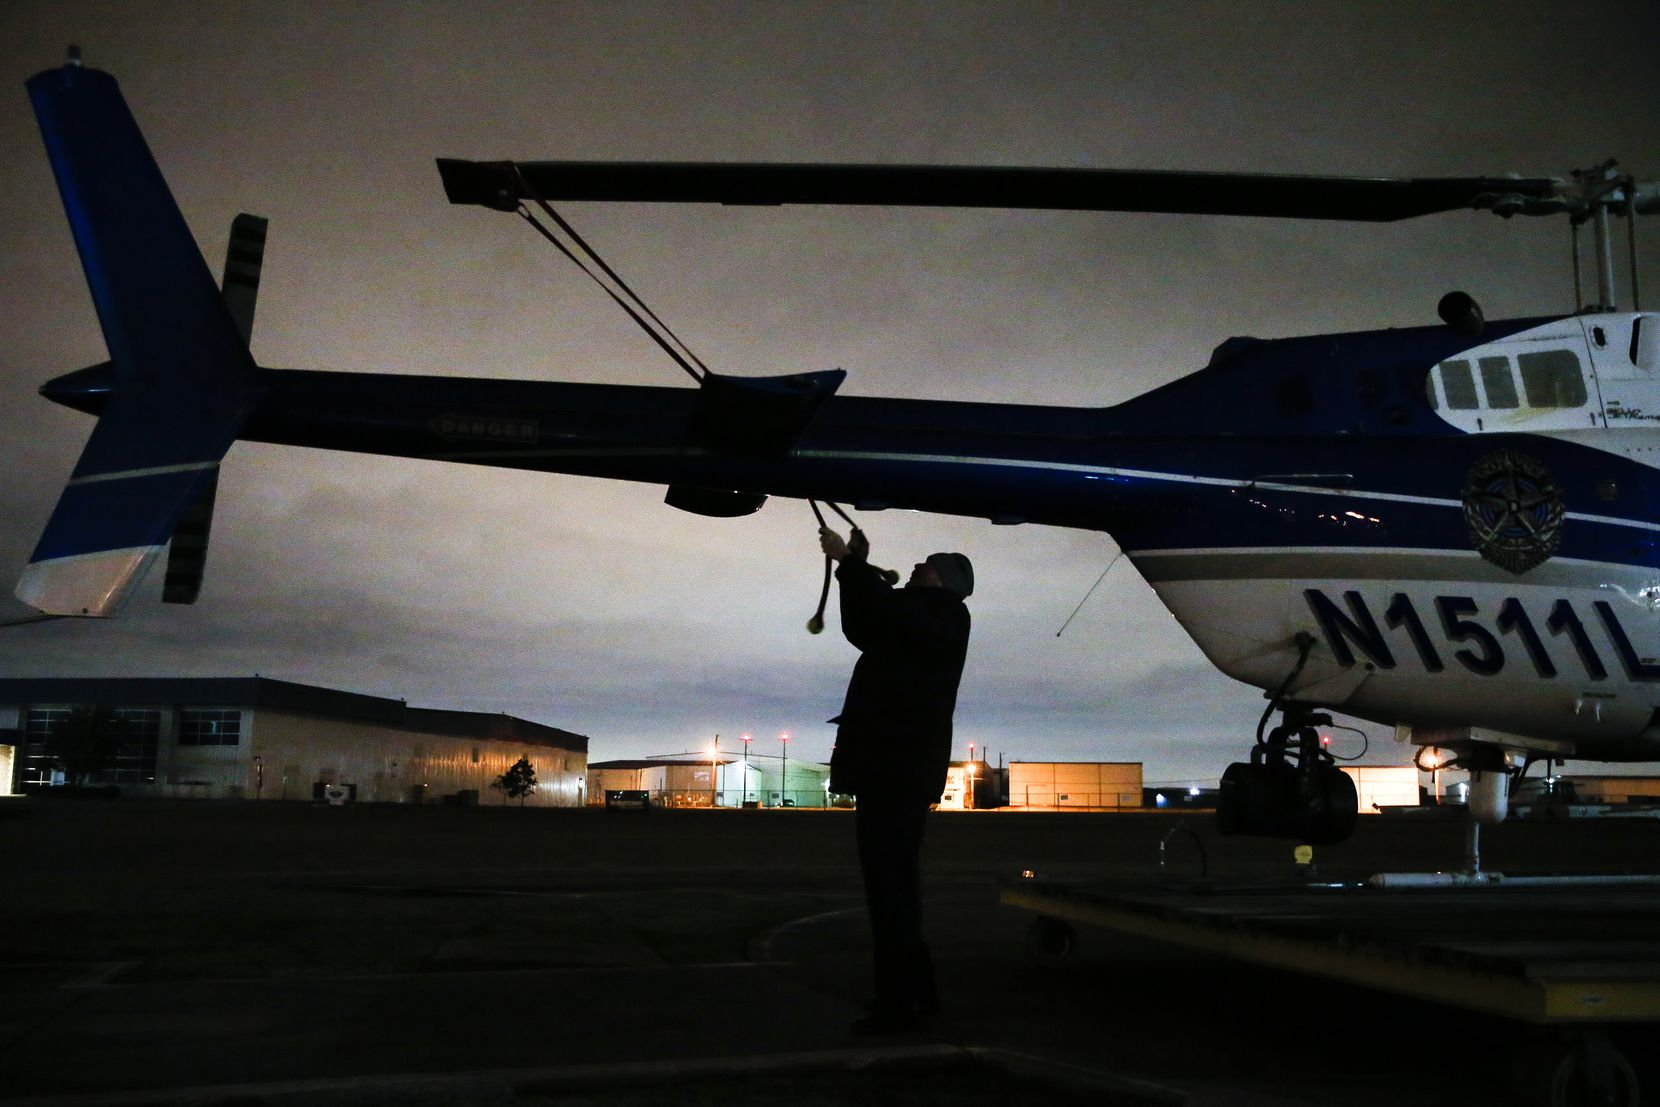 Senior Cpl. Mark Colborn ties down the main rotor blade of one of the unit's helicopters outside a hangar at Dallas Executive Airport as high winds blow into Dallas.